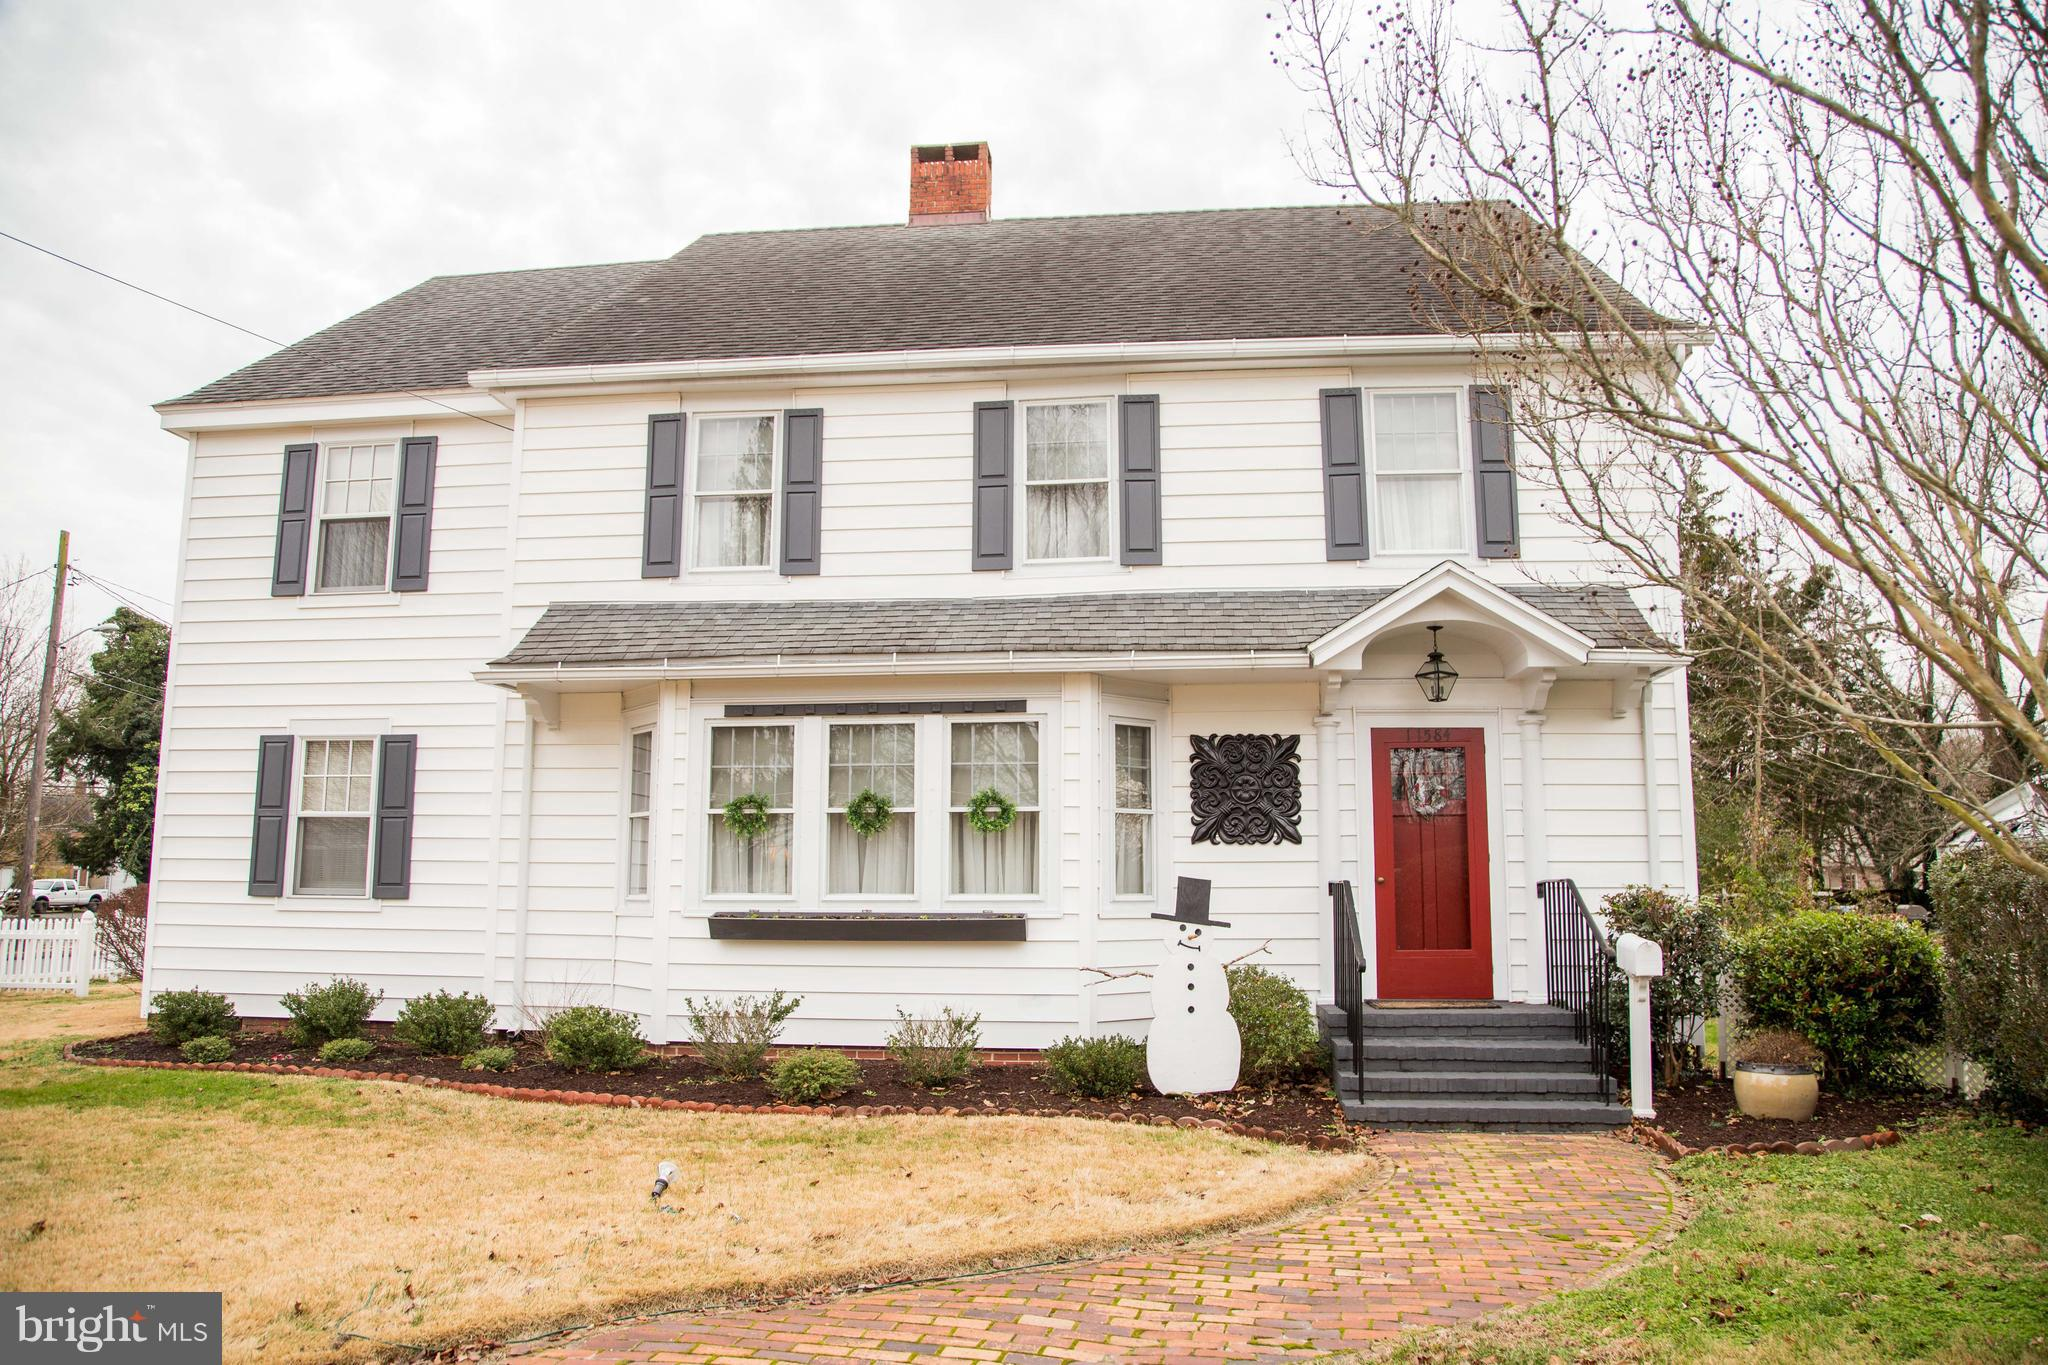 11584 SOMERSET AVENUE, PRINCESS ANNE, MD 21853